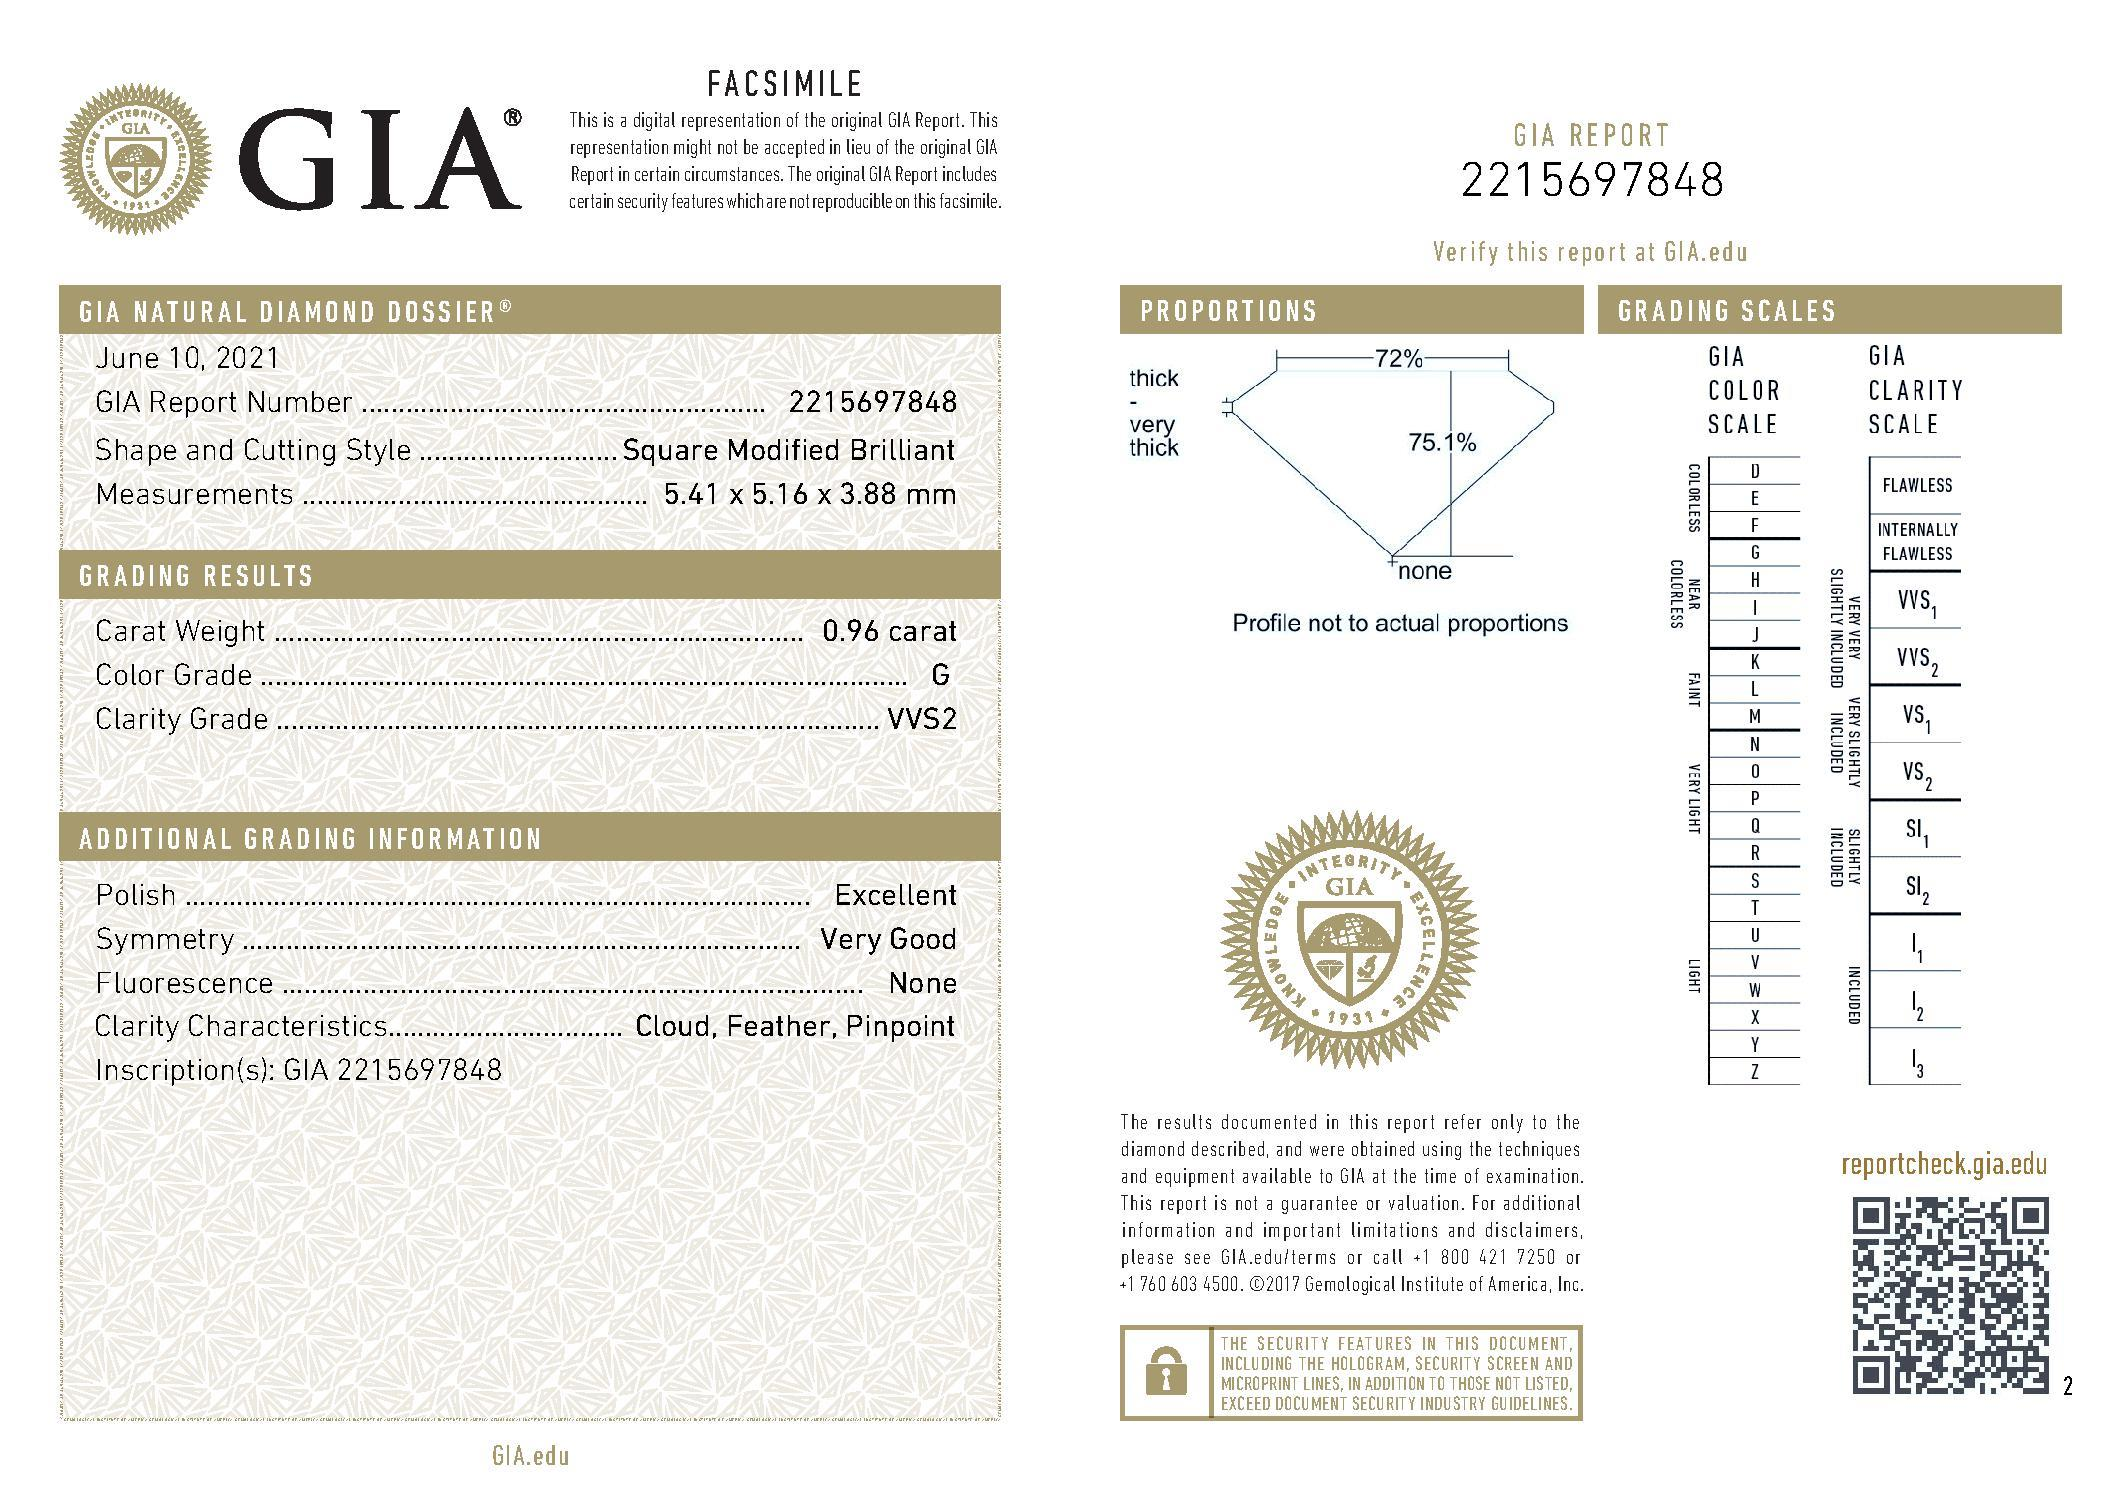 This is a 0.96 carat princess shape, G color, VVS2 clarity natural diamond accompanied by a GIA grading report.